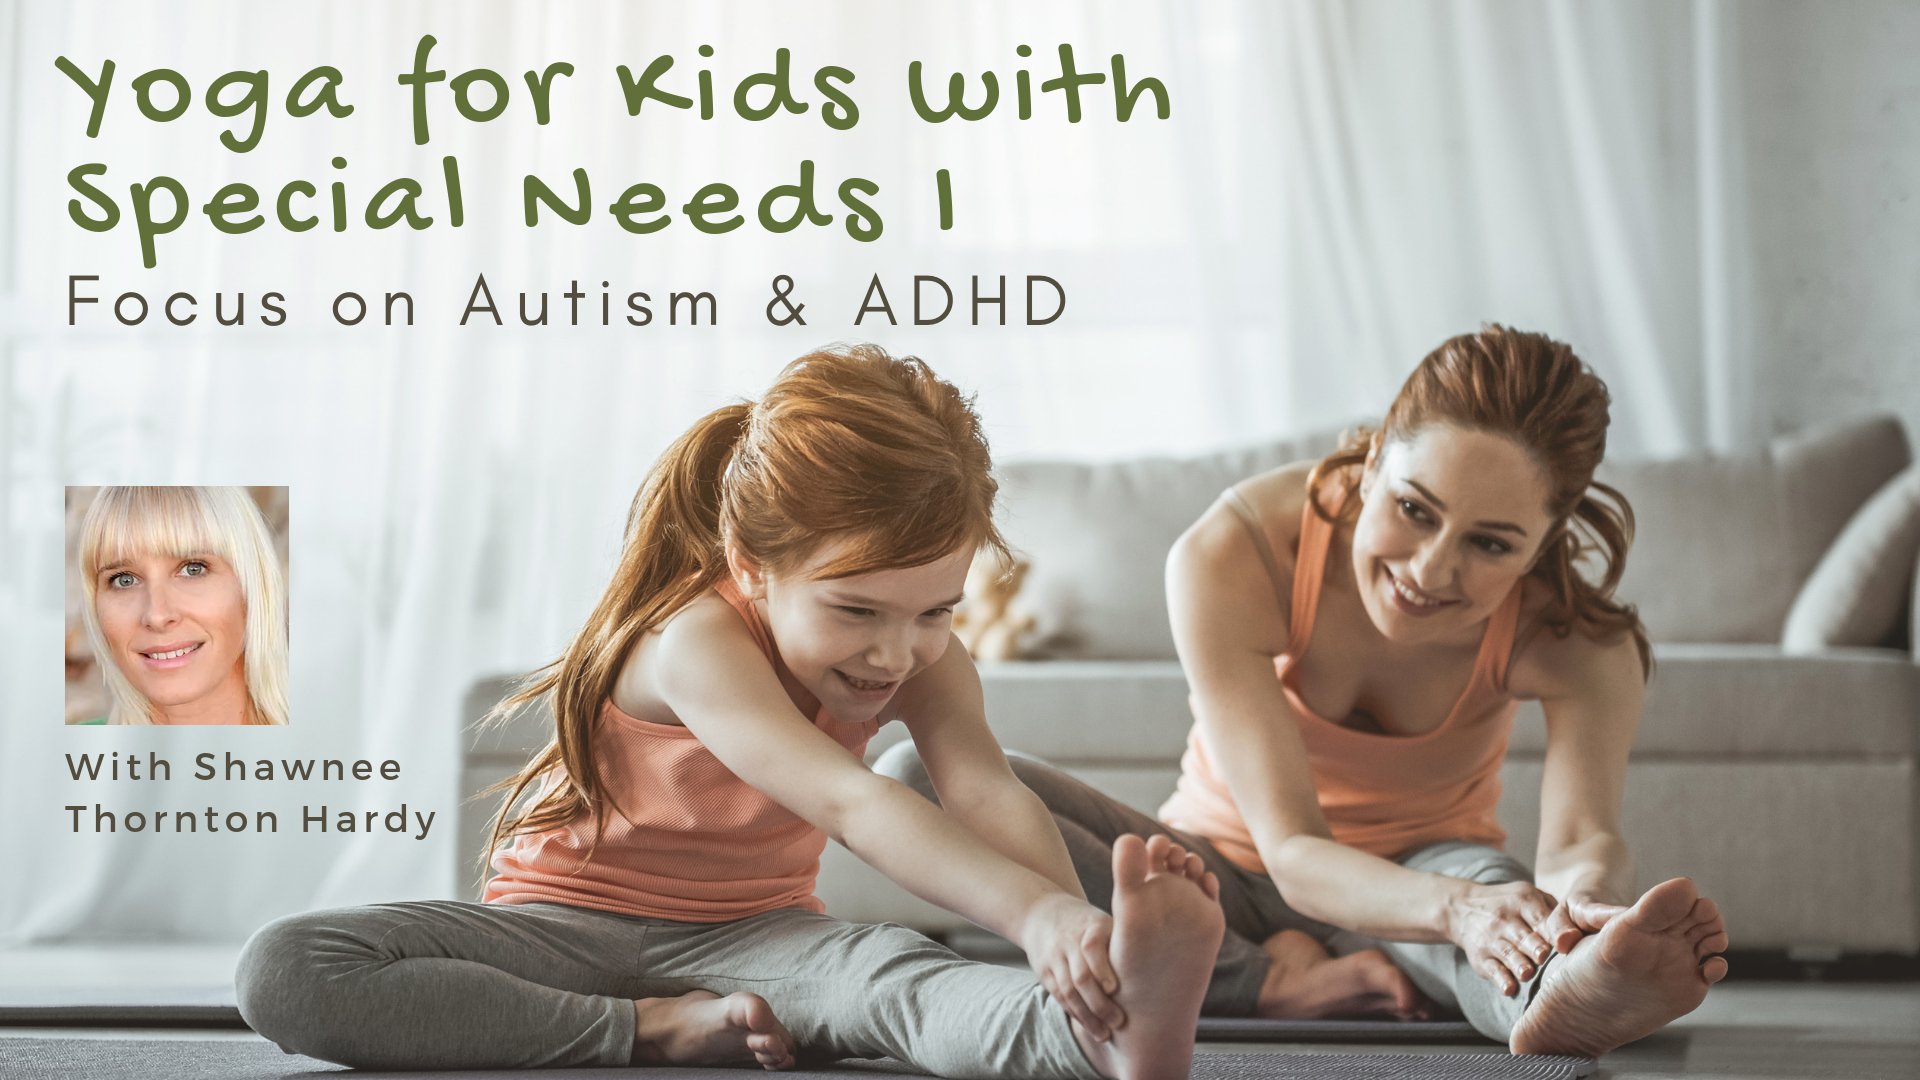 online yoga course for teaching yoga to kids with special needs